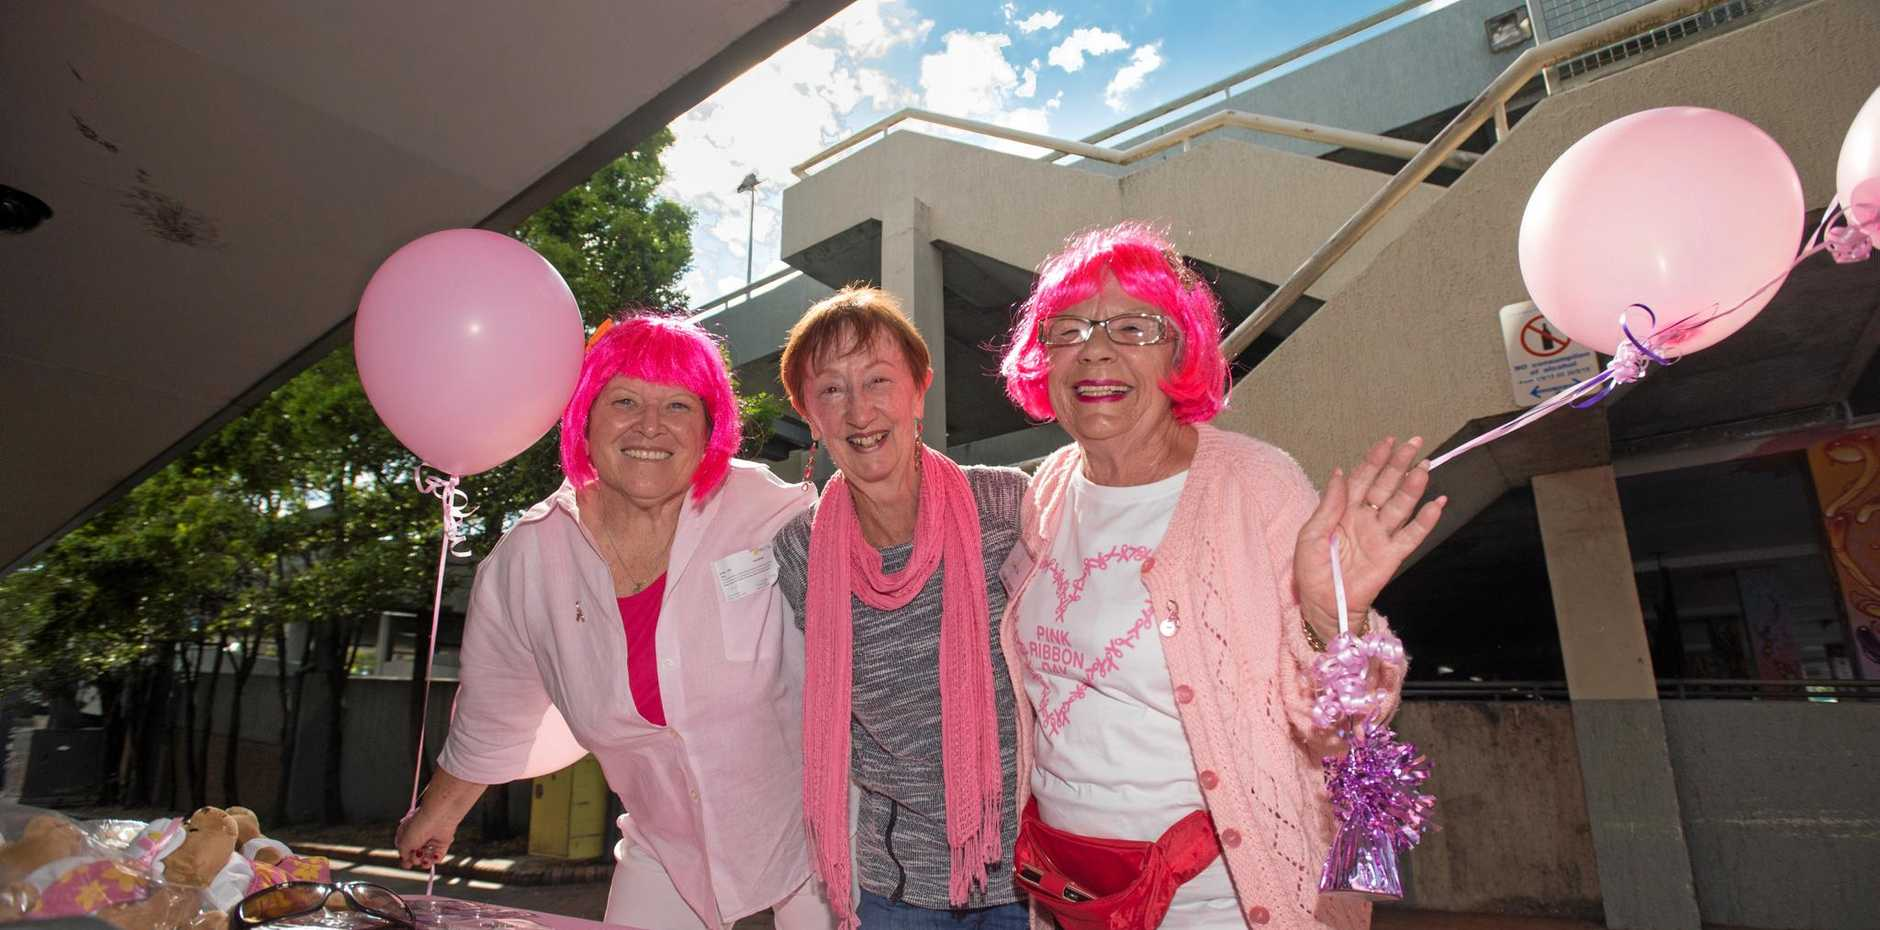 Denise Bass, Kathy Clough and cancer survivor Dorothy Lockart at Pink Ribbon Day stall in the mall.